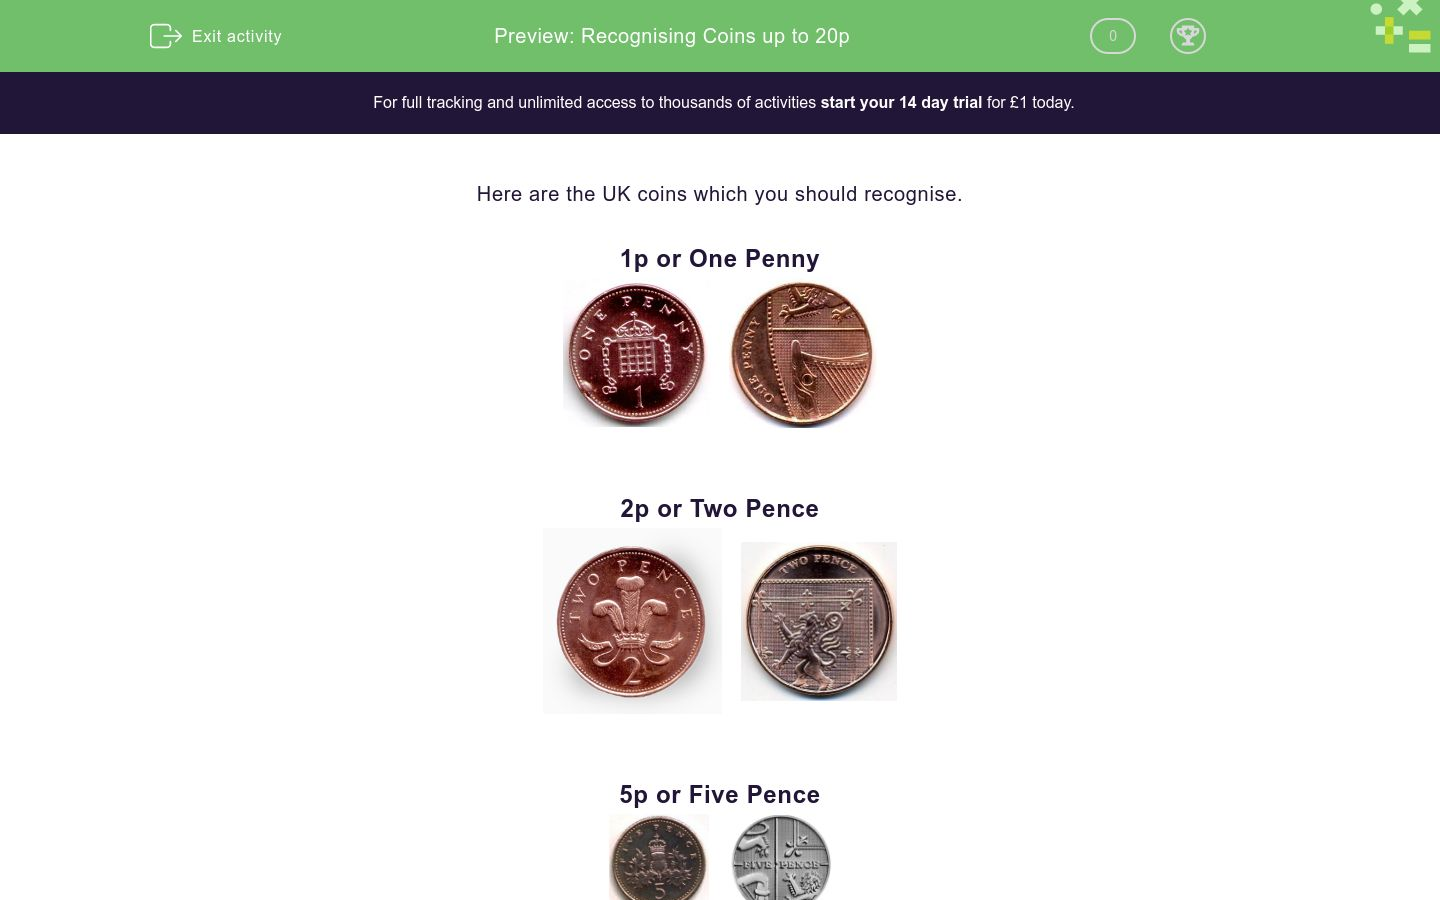 'Recognising Coins up to 20p' worksheet